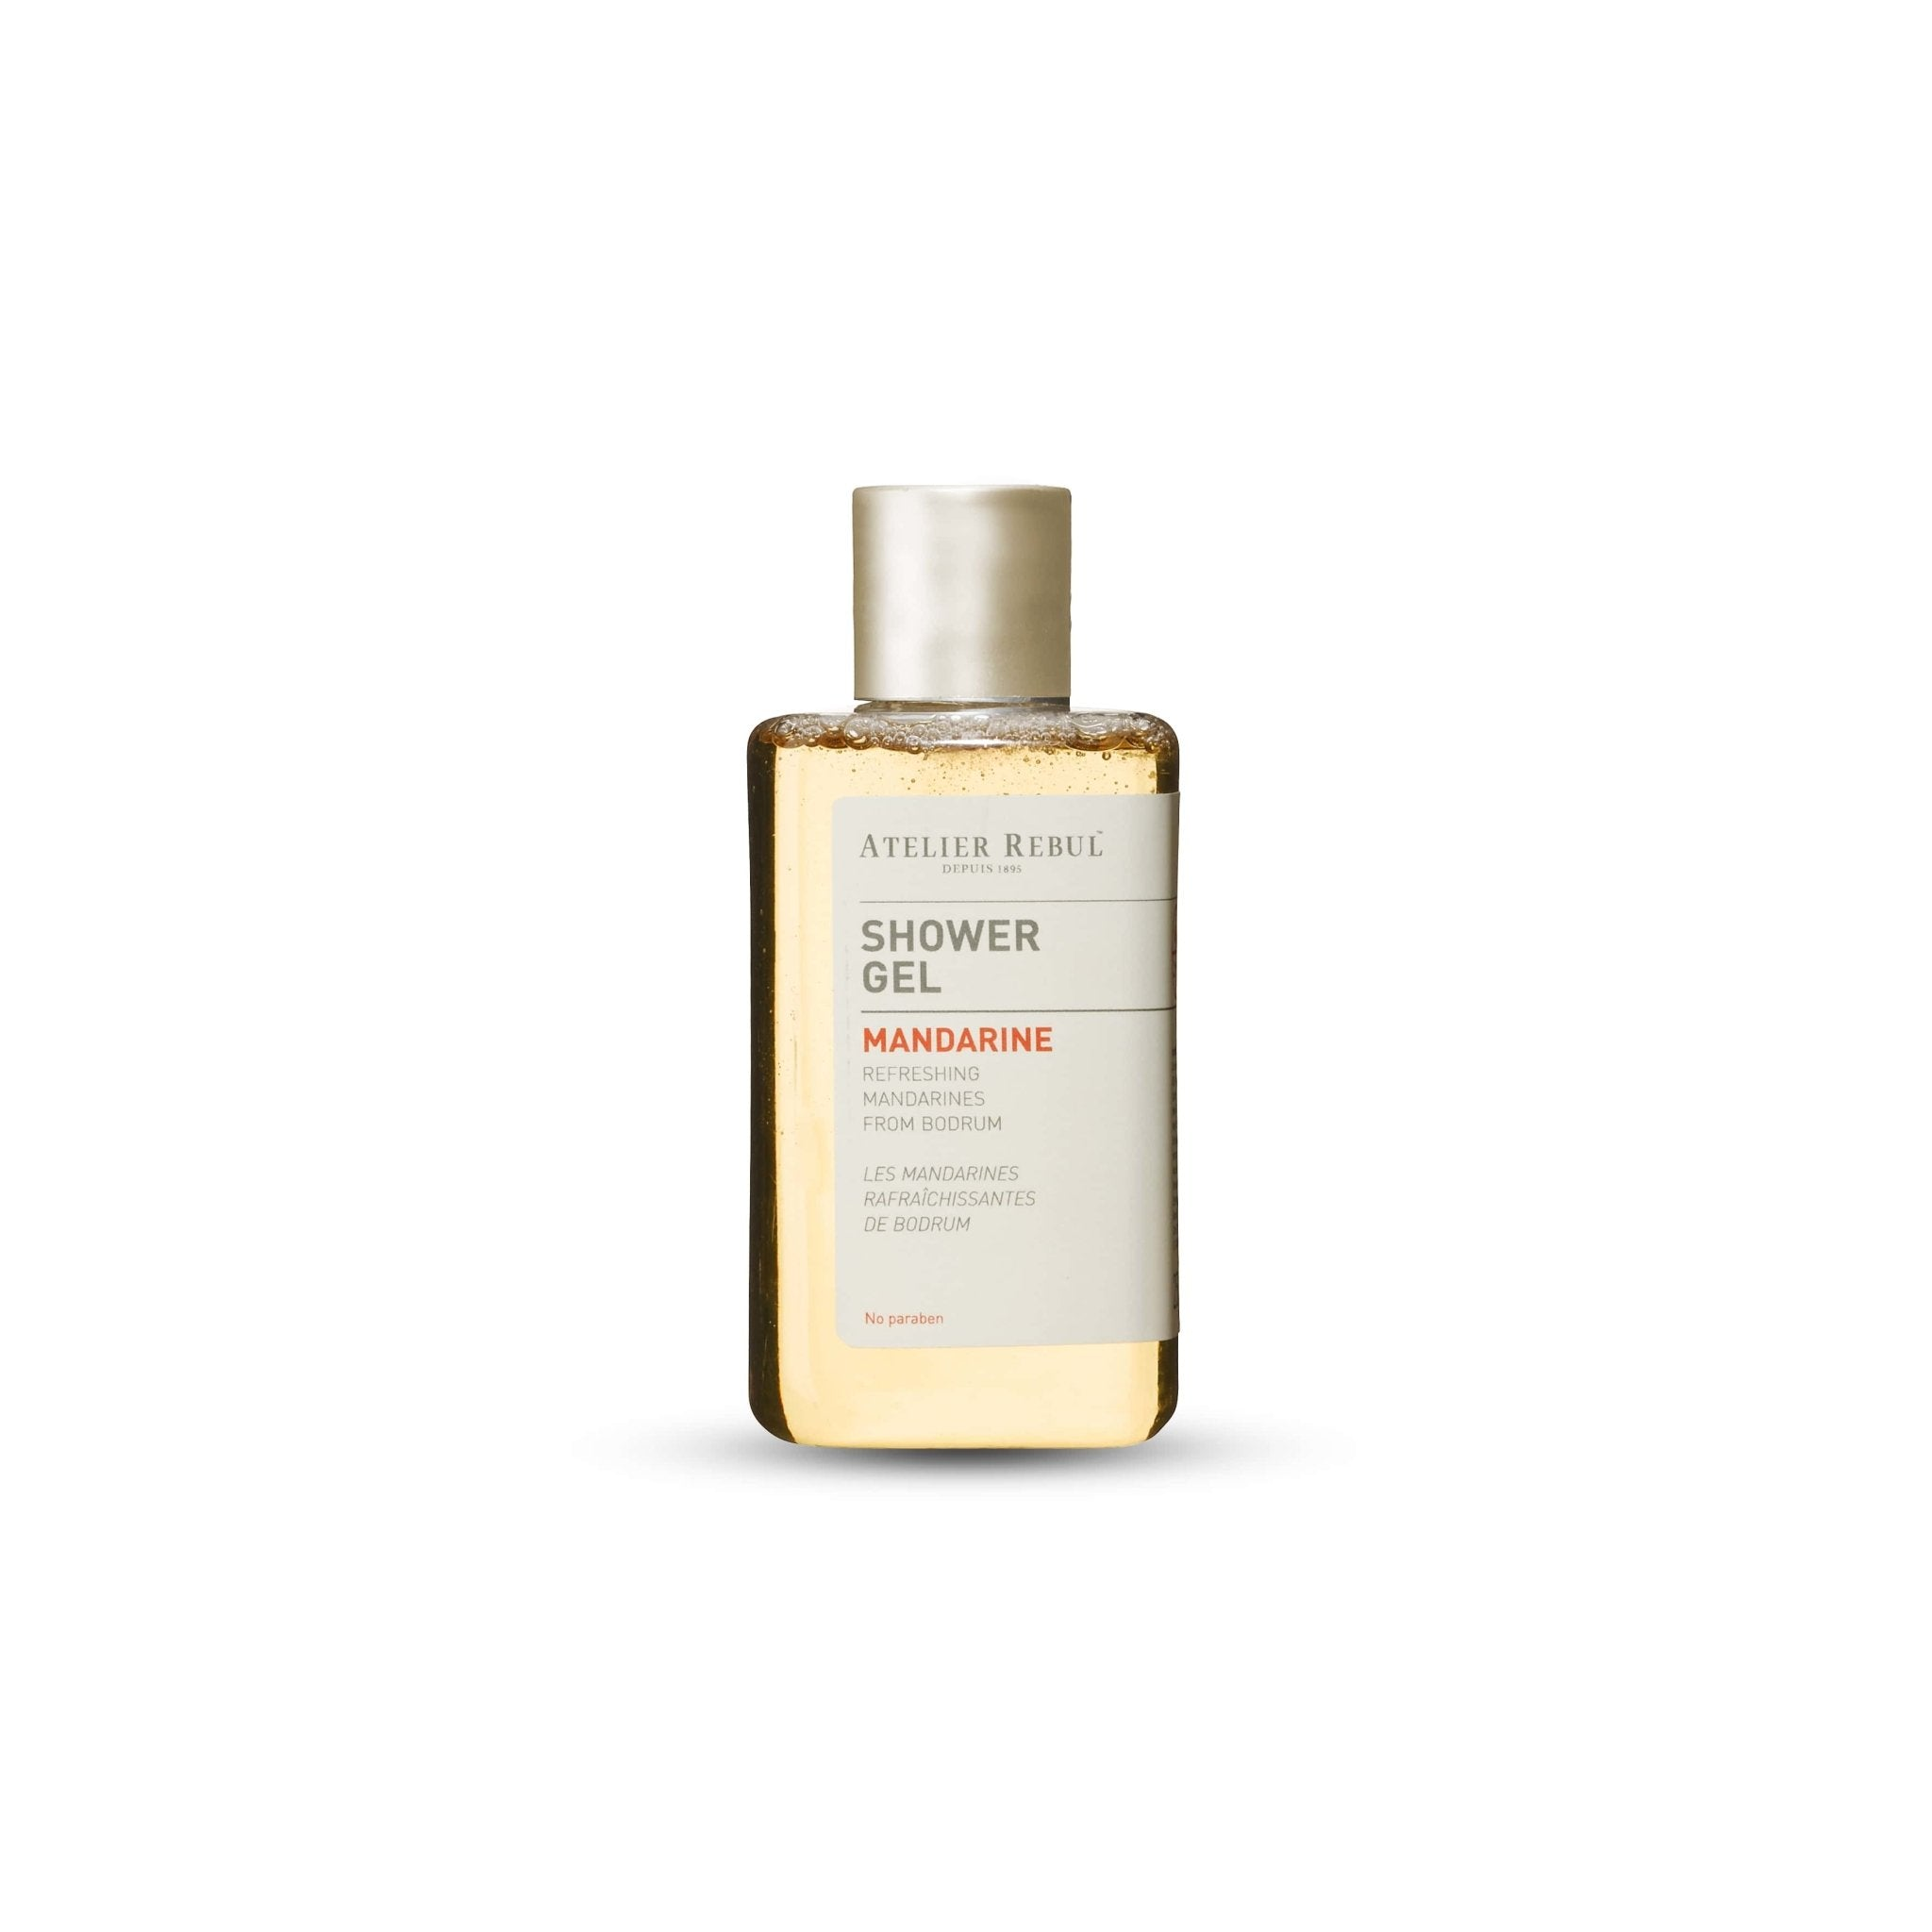 Mandarine Shower Gel 250ml - Atelier Rebul